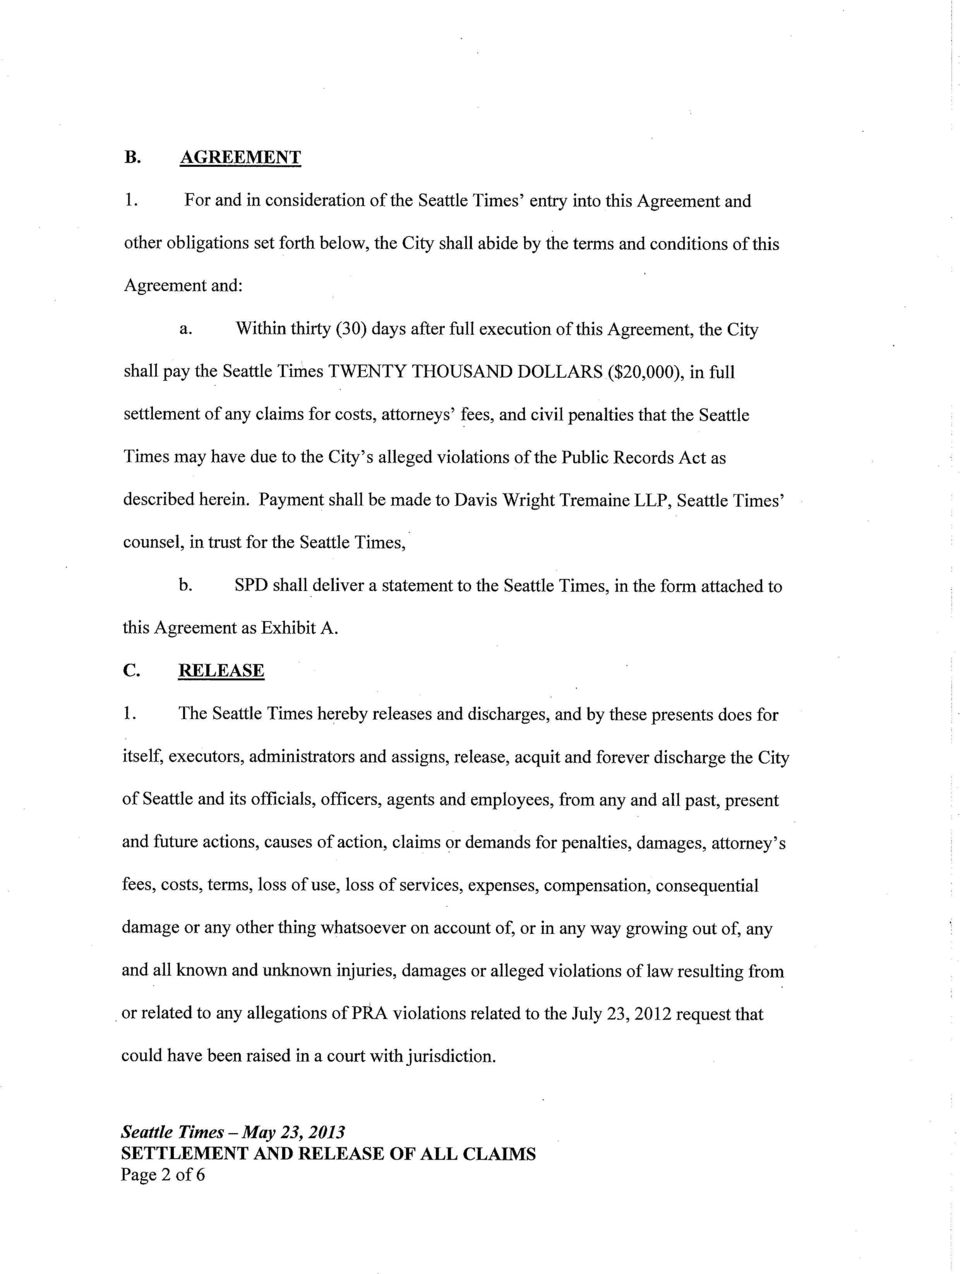 Within thirty (30) days after full execution of this Agreement, the City shall pay the Seattle Times TWENTY THOUSAND DOLLARS ($20,000), in full settlement of any claims for costs, attorneys' fees,